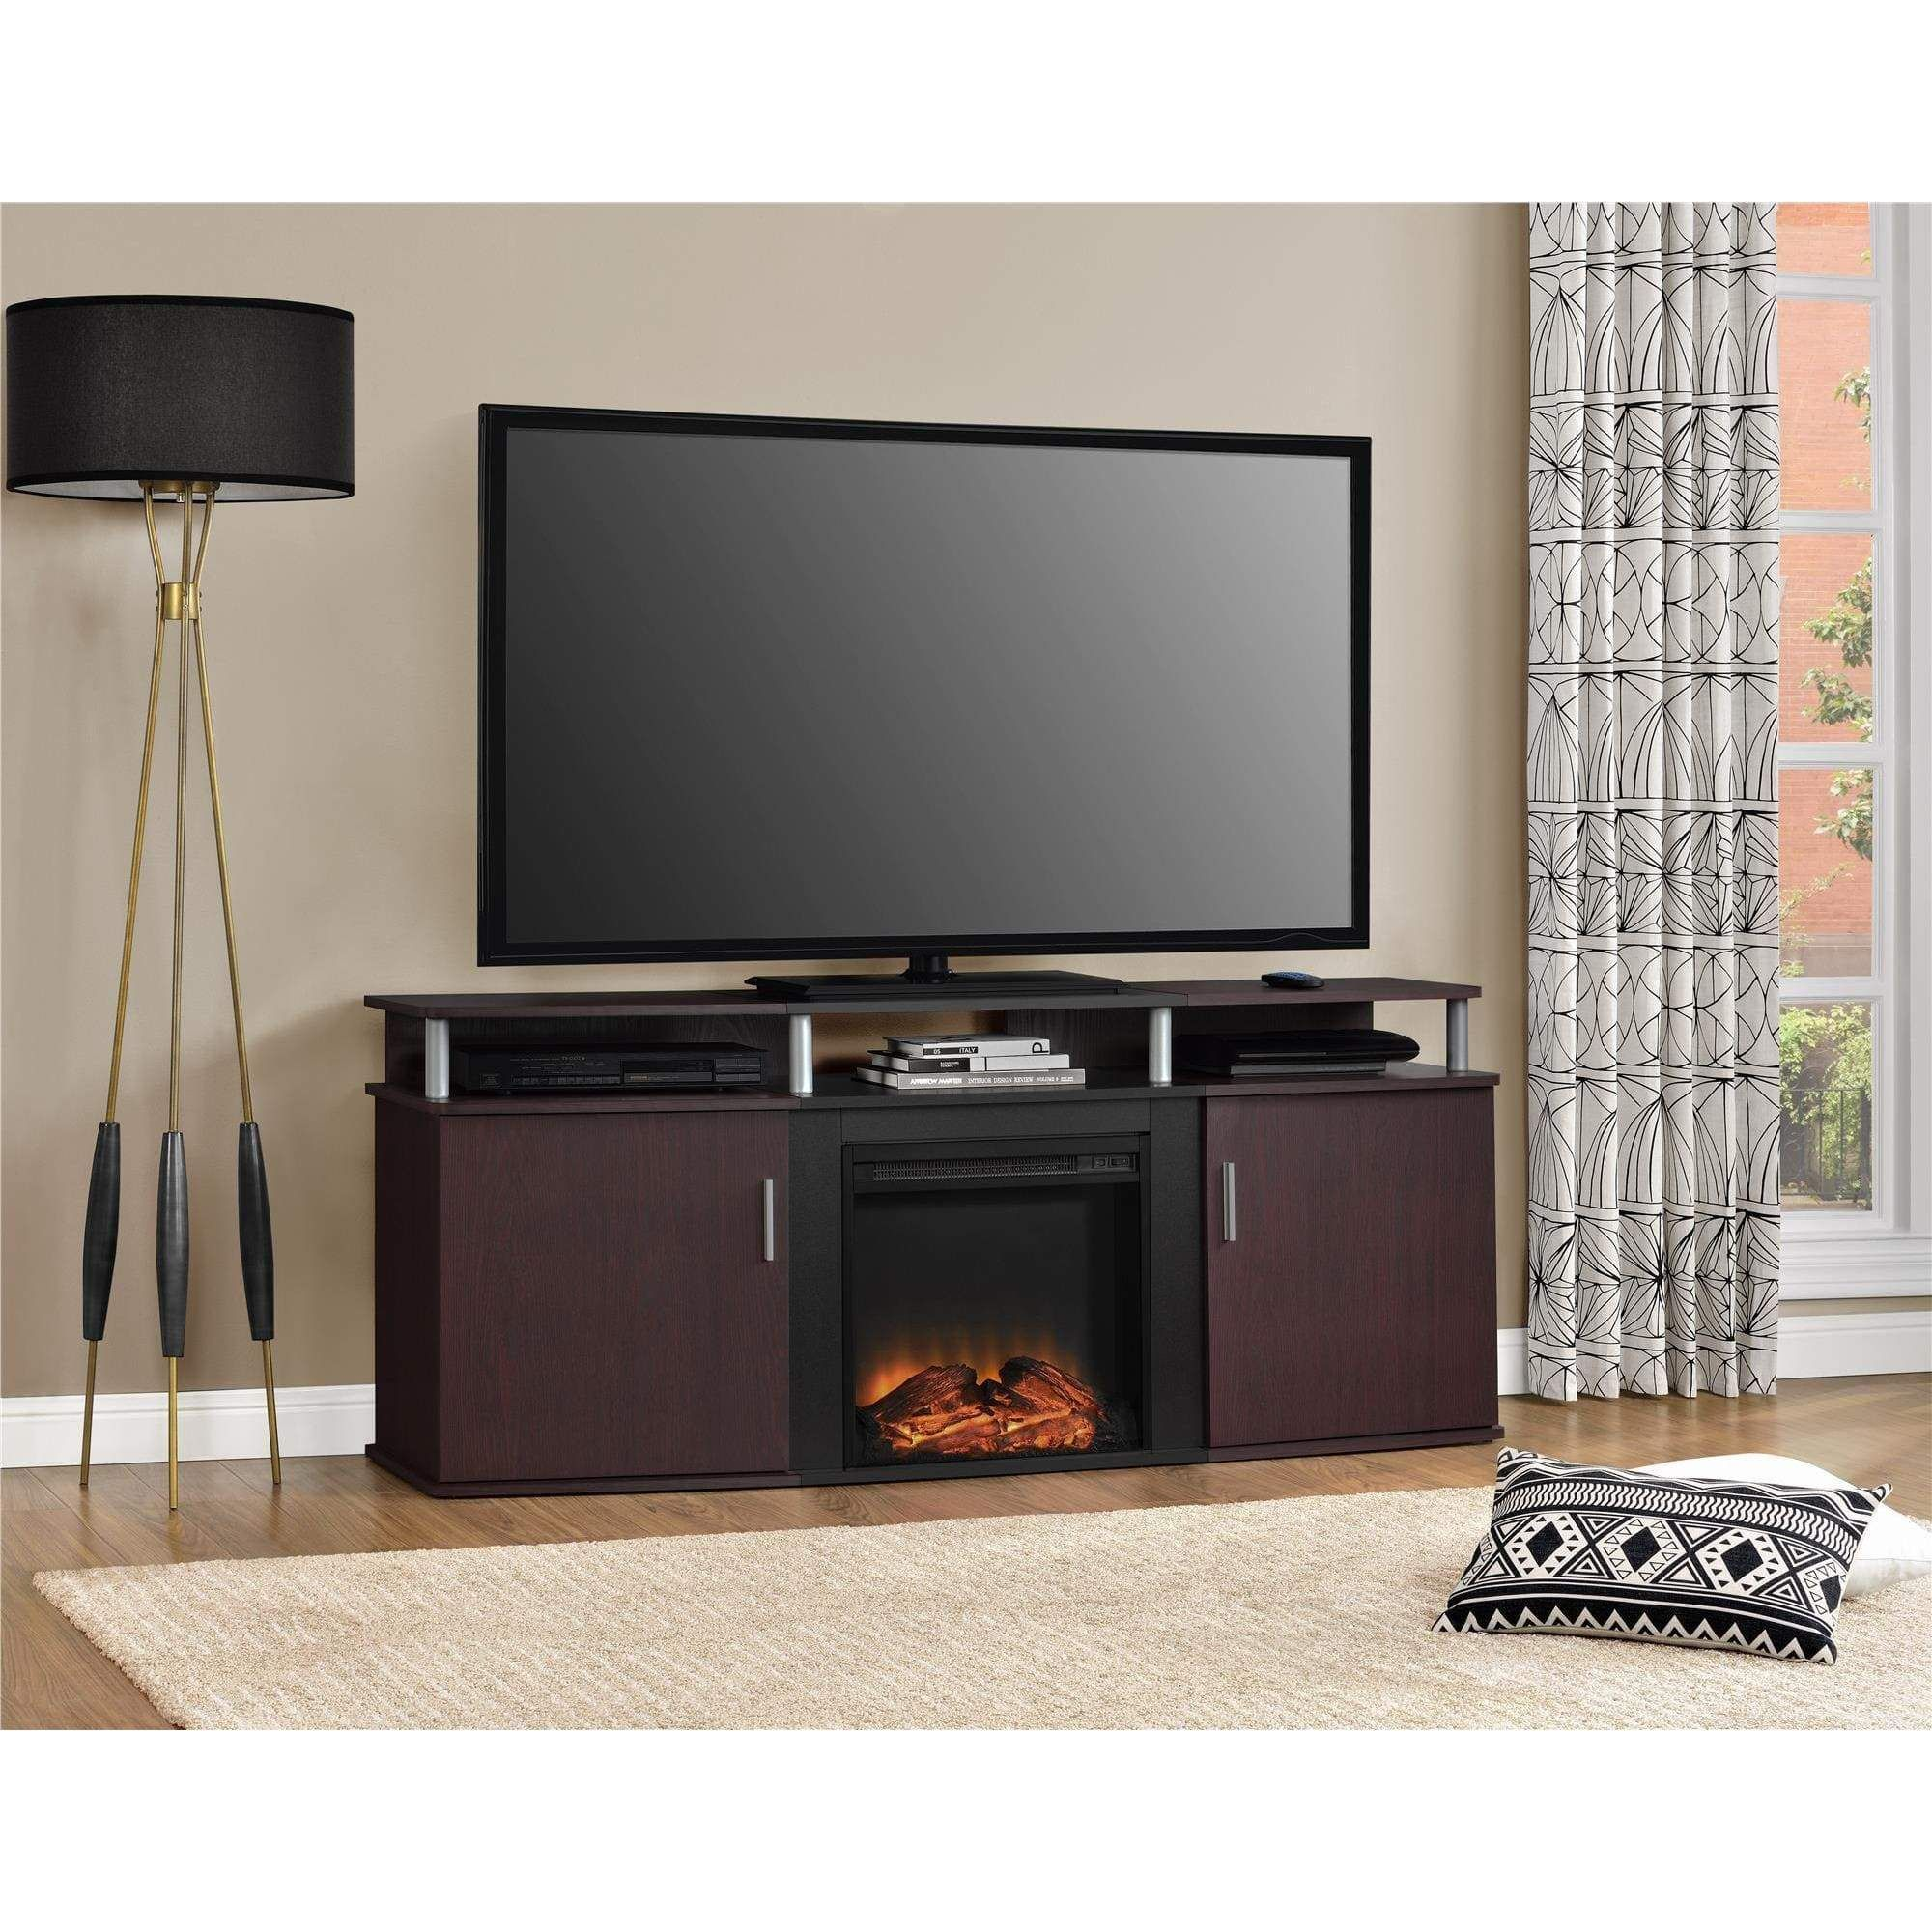 ameriwood home carson electric fireplace 70 inch cherry tv console